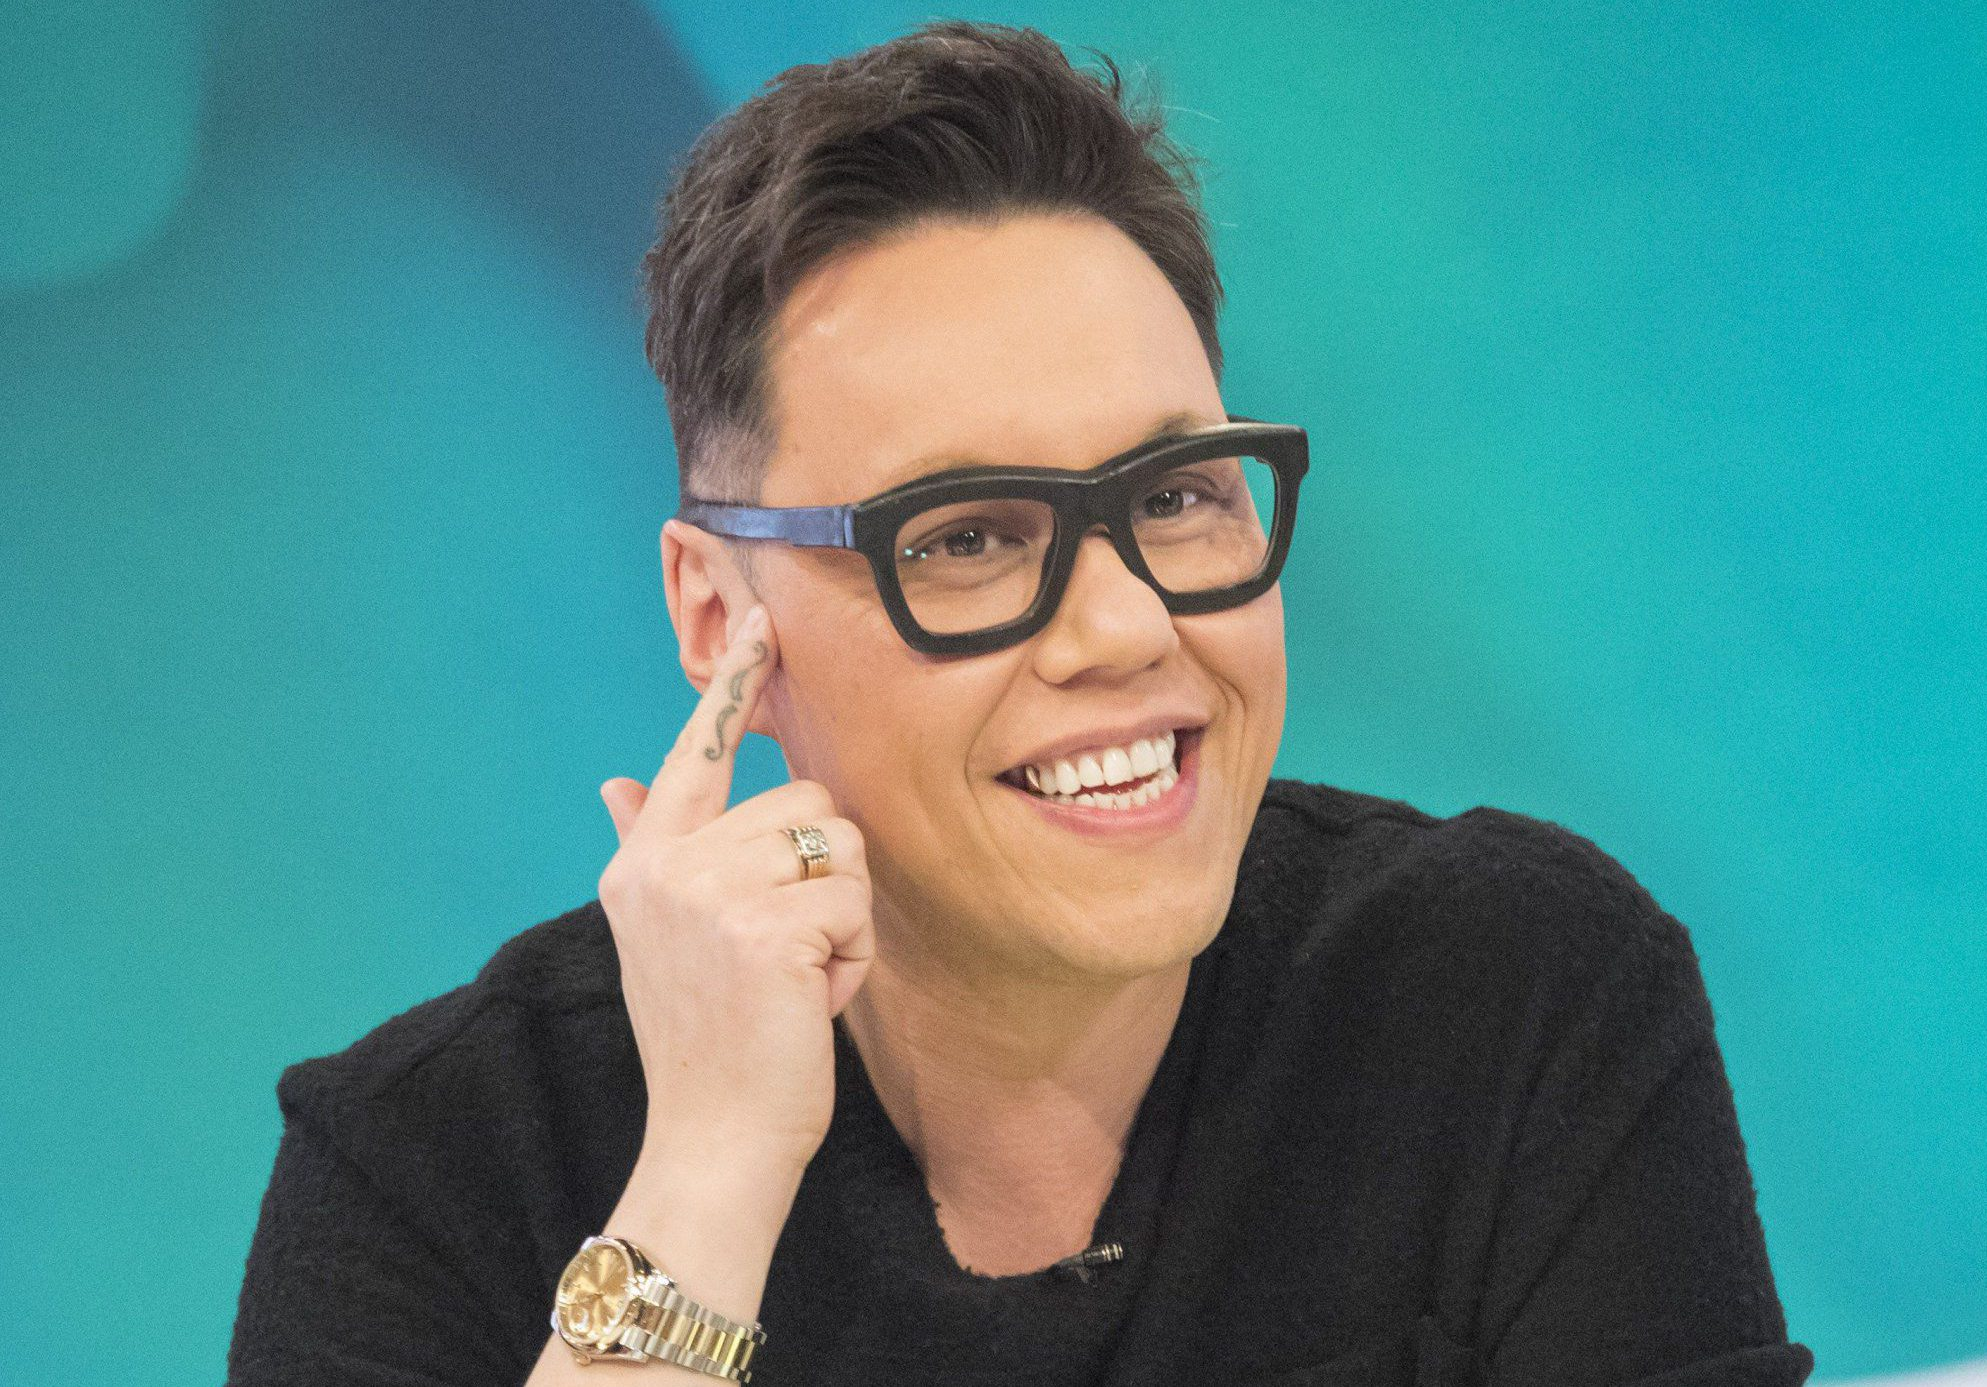 Gok Wan age, net worth and love life as he appears on Loose Women